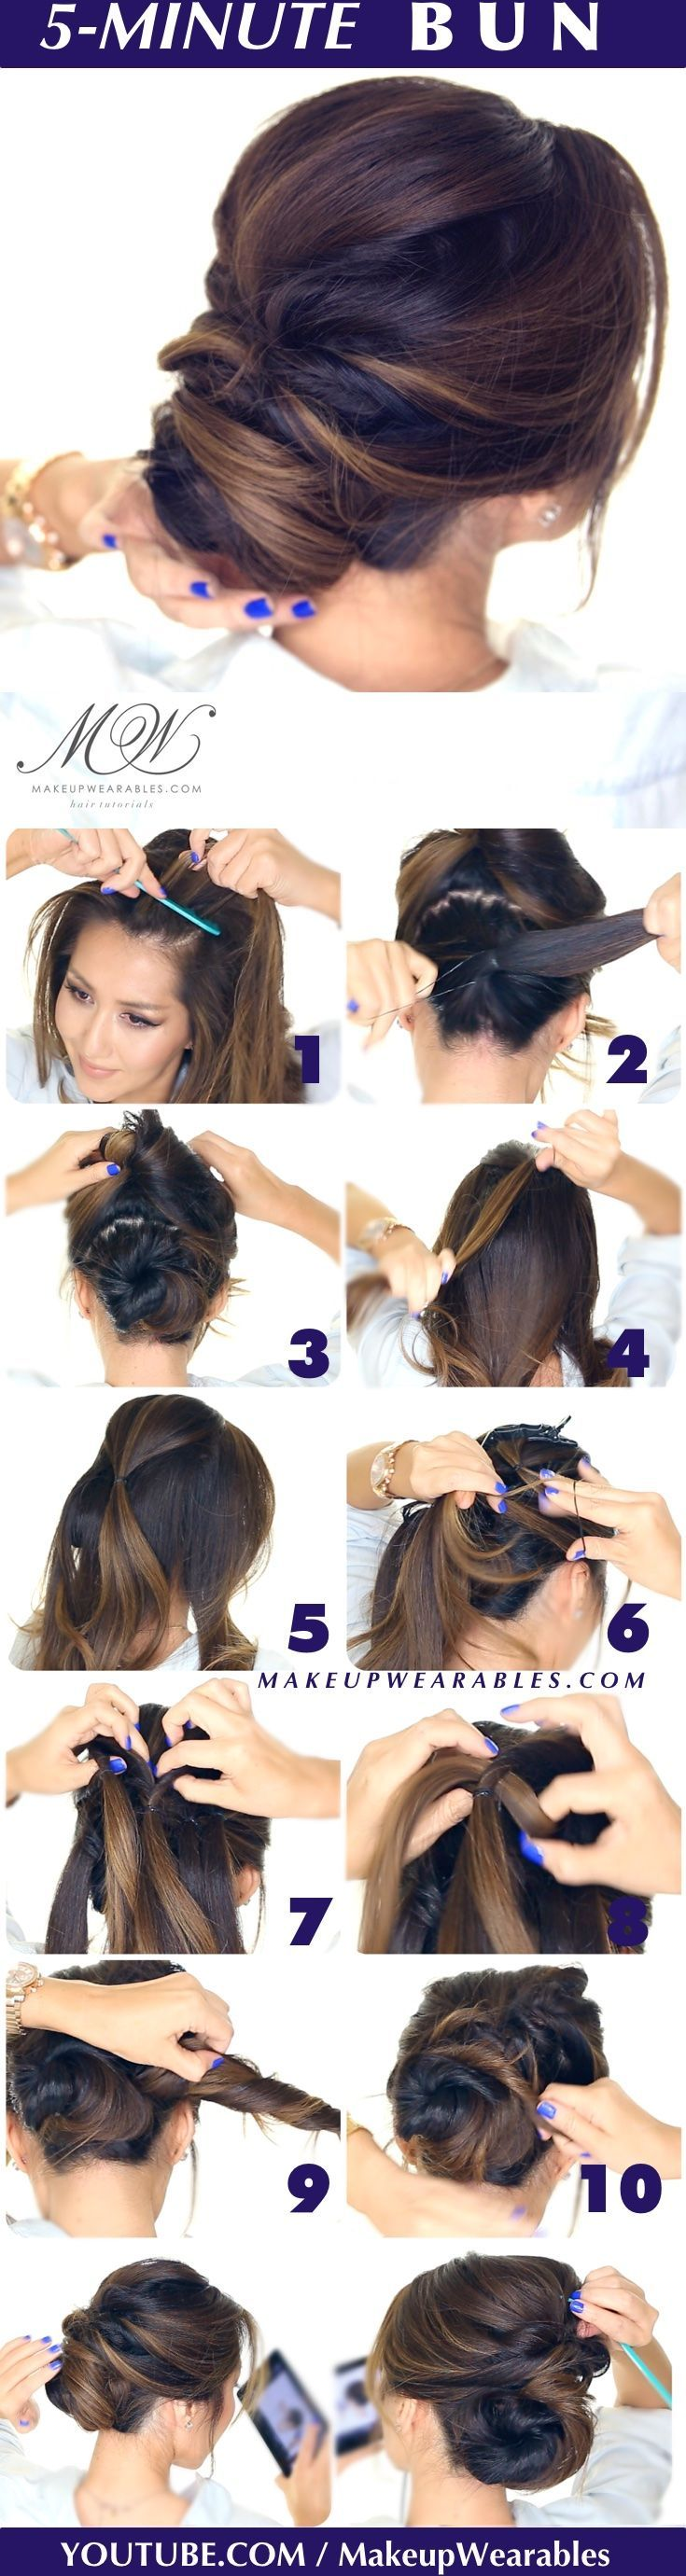 25 trending 5 minute hairstyles ideas on Pinterest